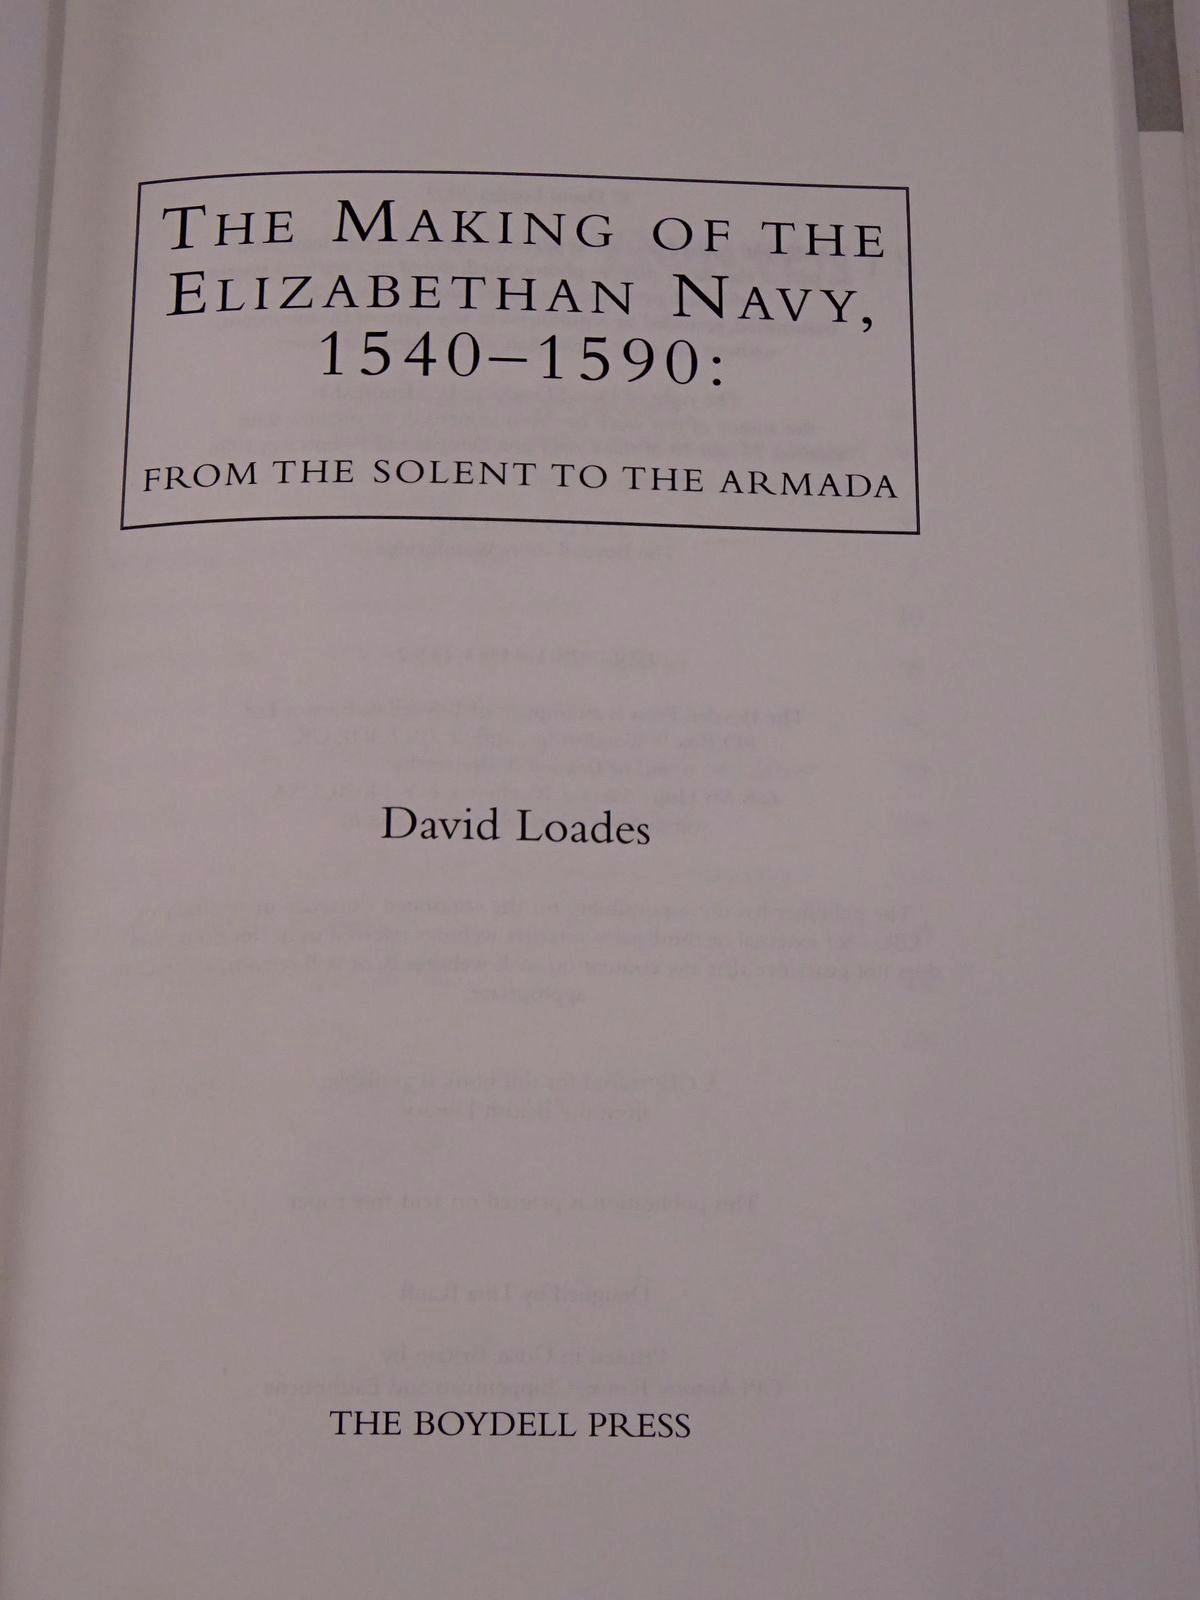 Photo of THE MAKING OF THE ELIZABETHAN NAVY, 1540-1590: FROM THE SOLENT TO THE ARMADA written by Loades, David published by The Boydell Press (STOCK CODE: 1817894)  for sale by Stella & Rose's Books